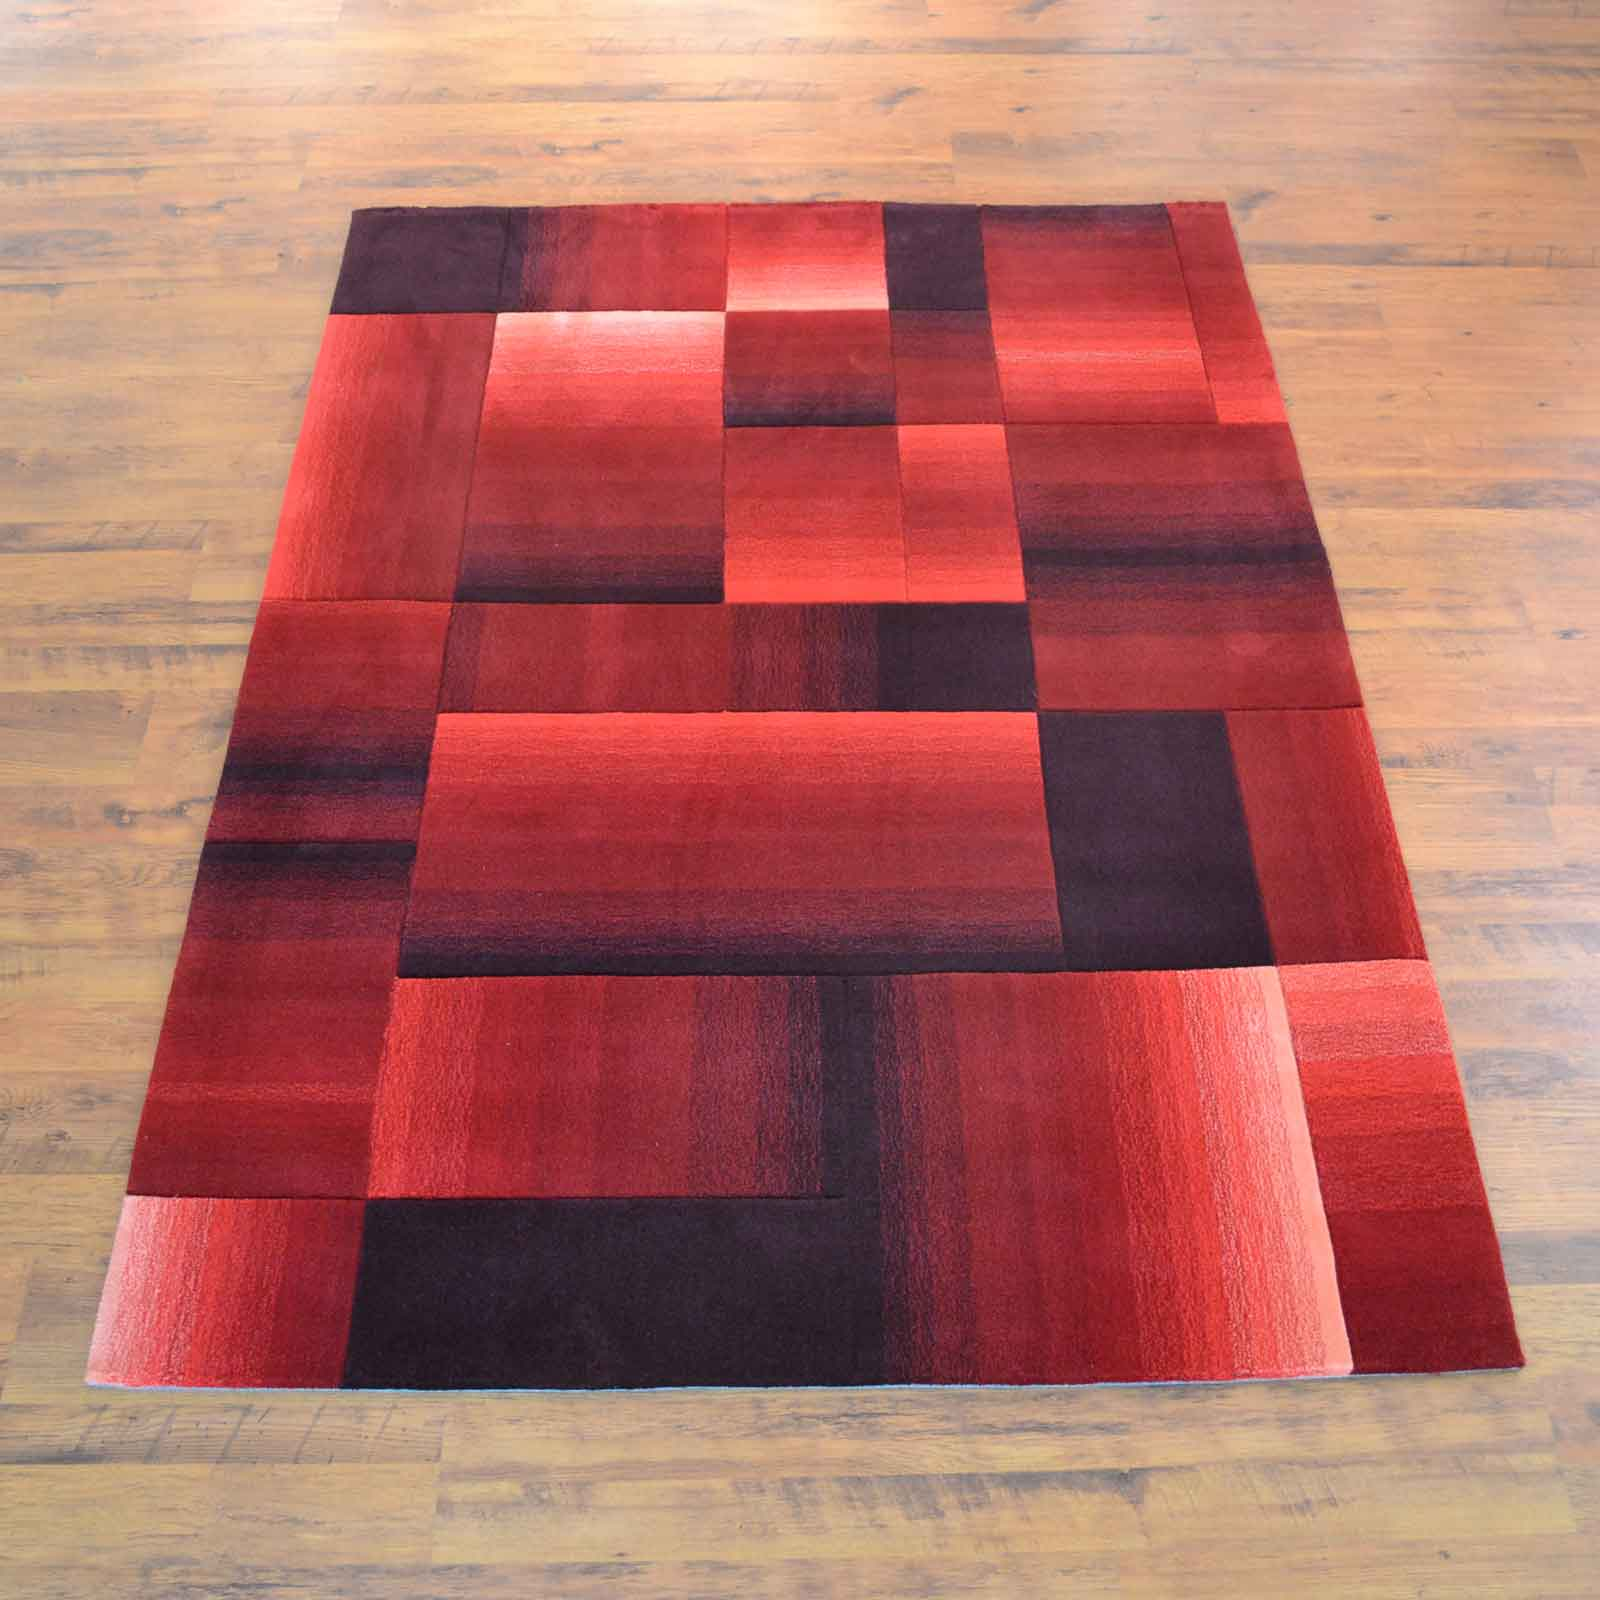 Digiworld Rugs 5035 41 Red by Arte Espina